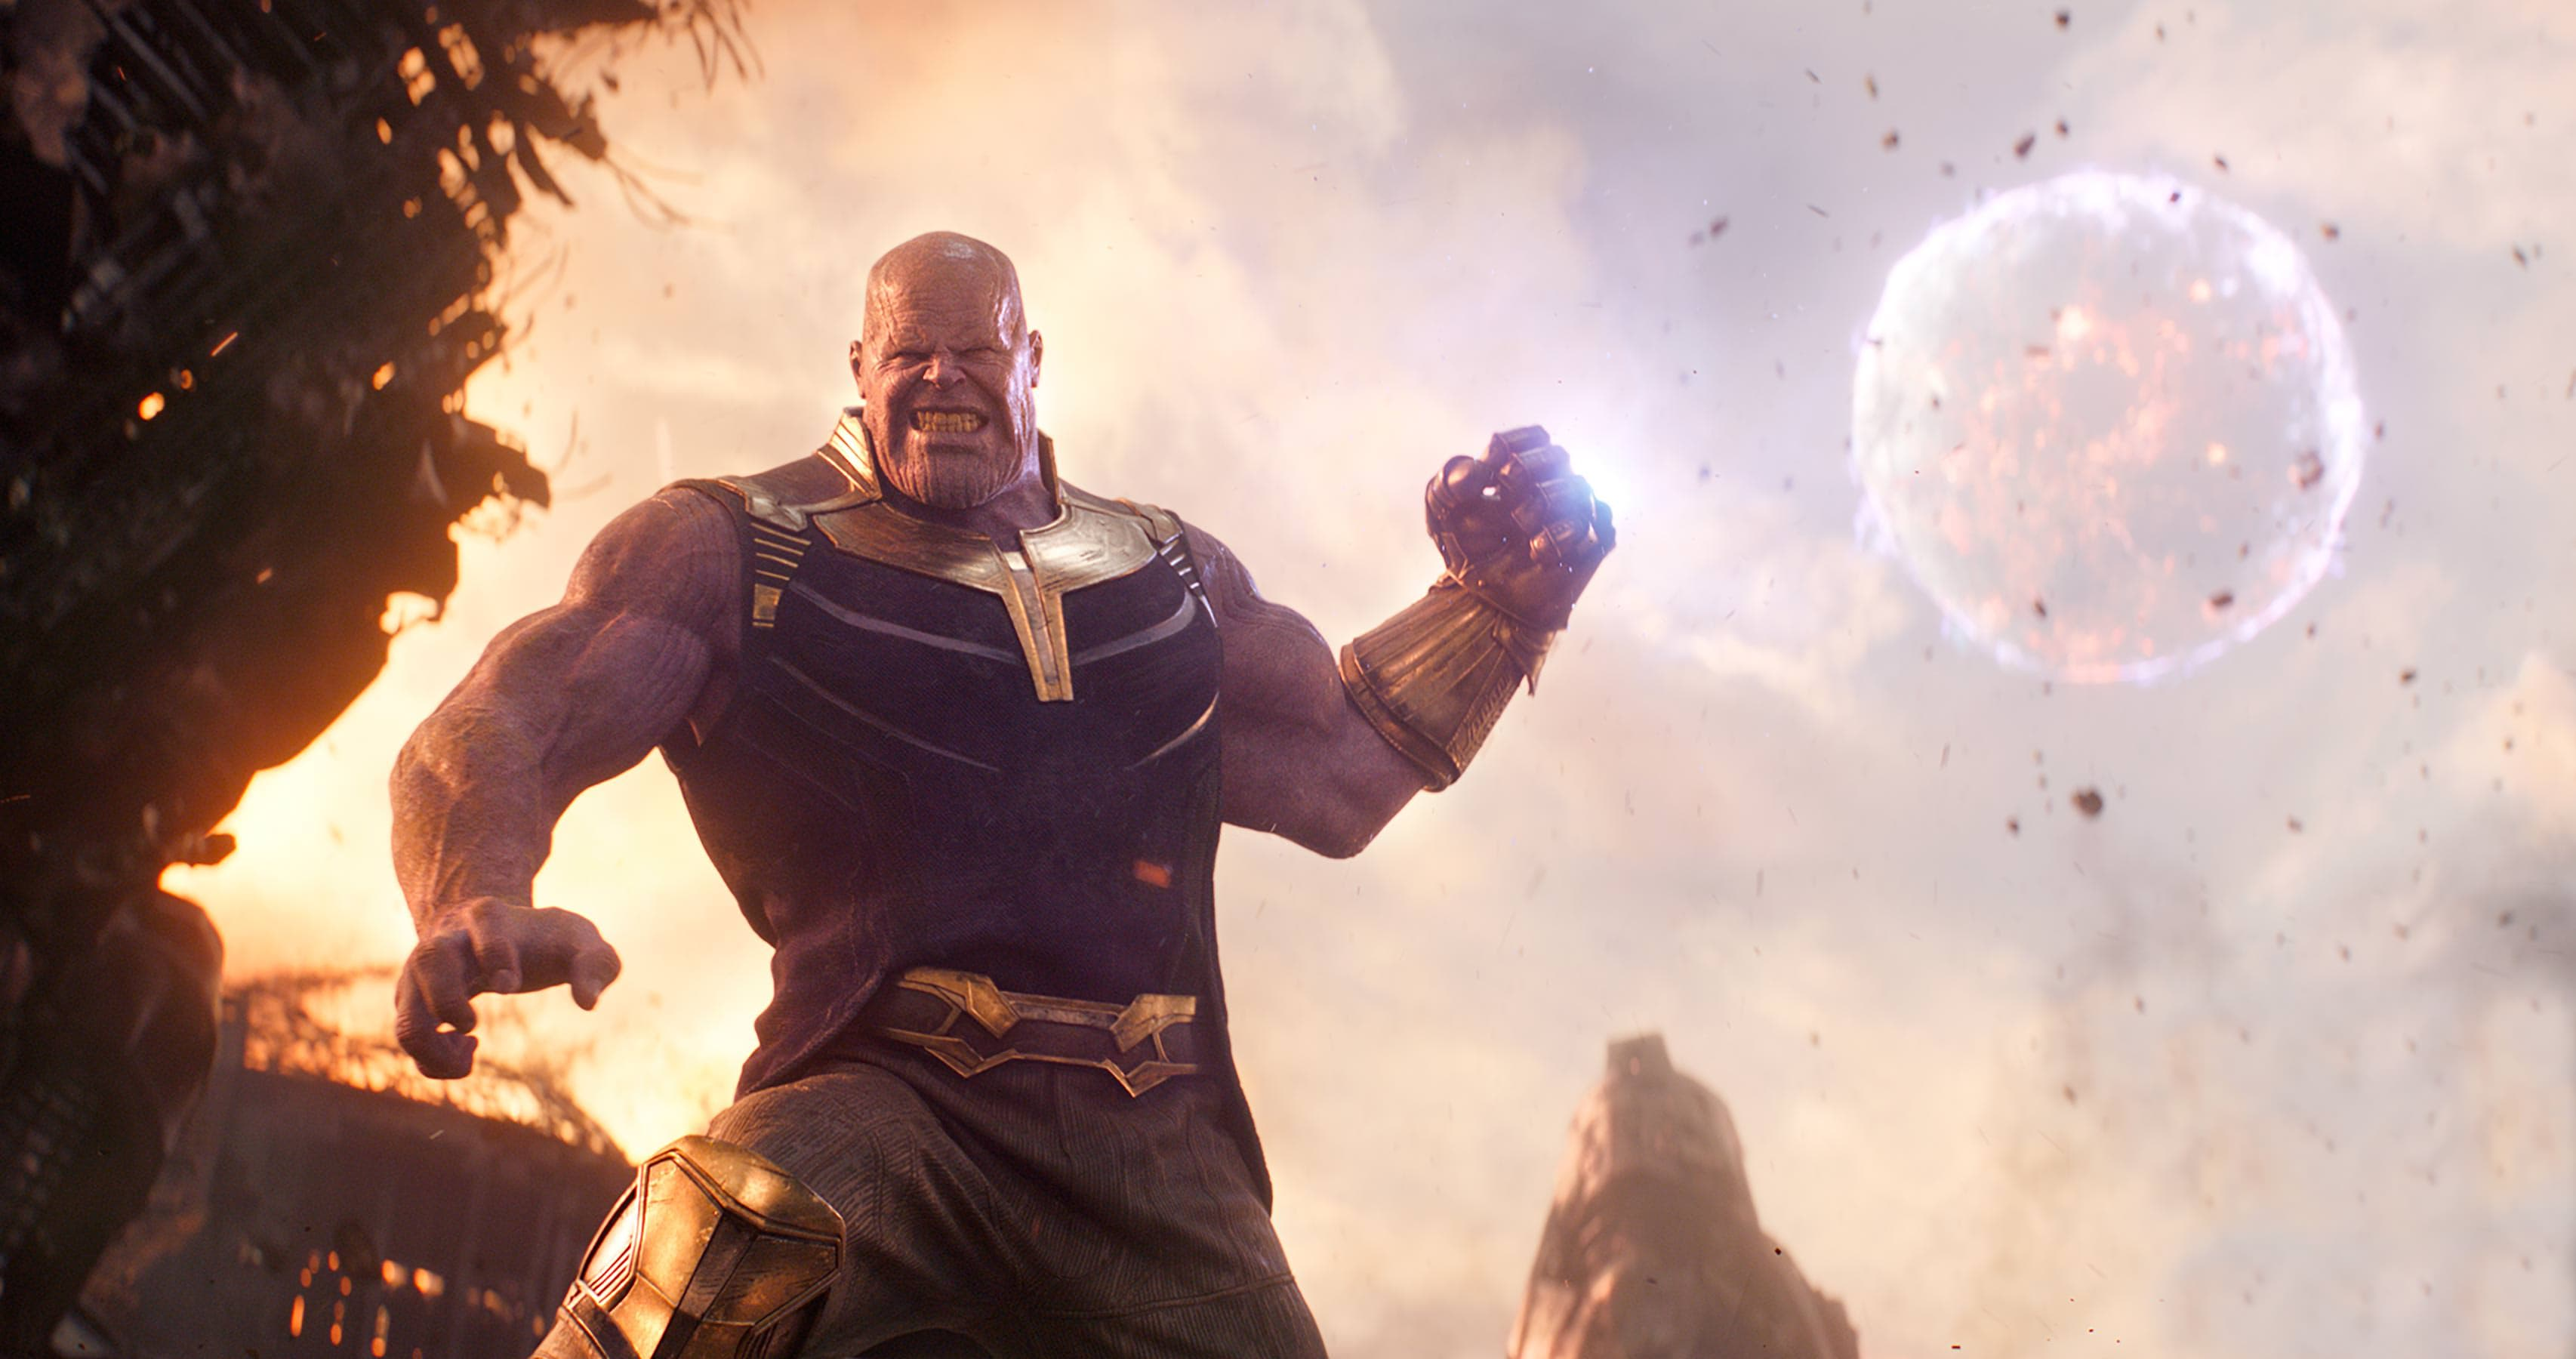 New 'Avengers: Infinity War' footage revealed in latest TV spot